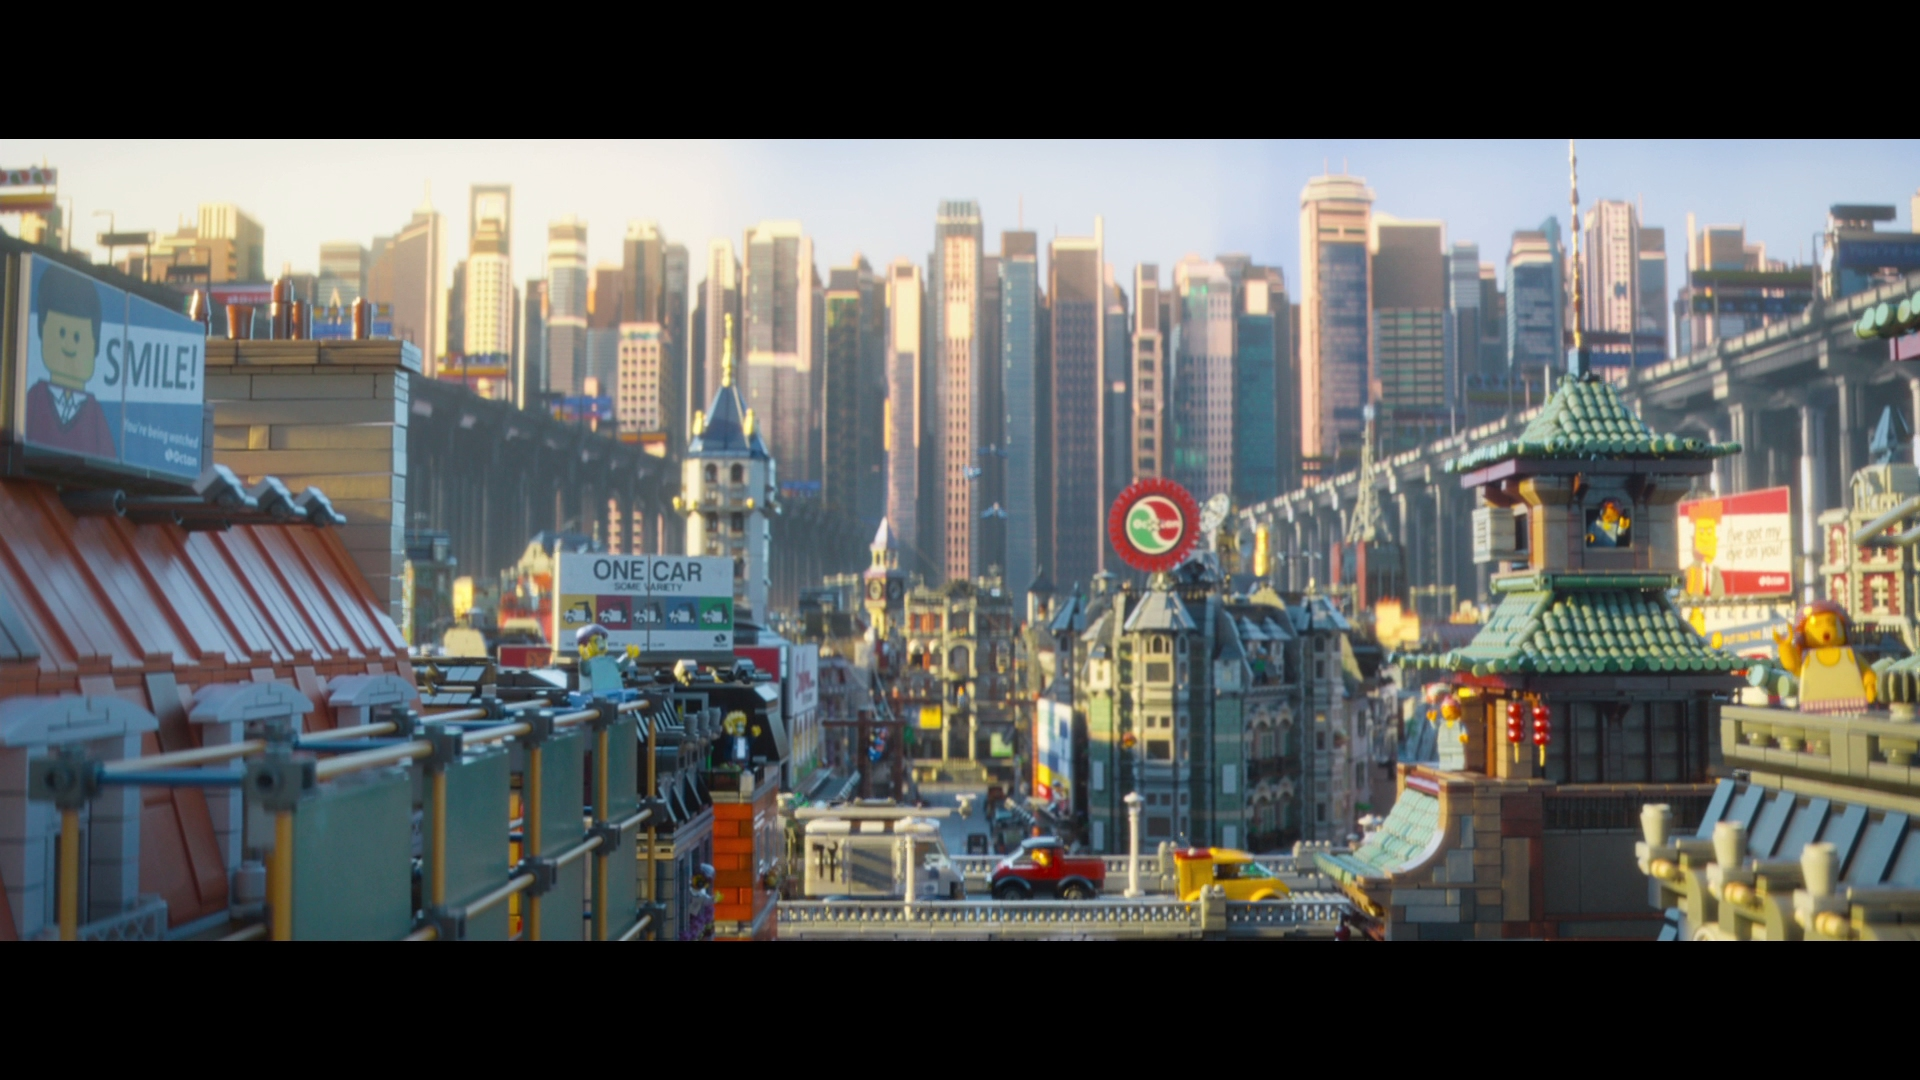 lego movie city background - photo #11